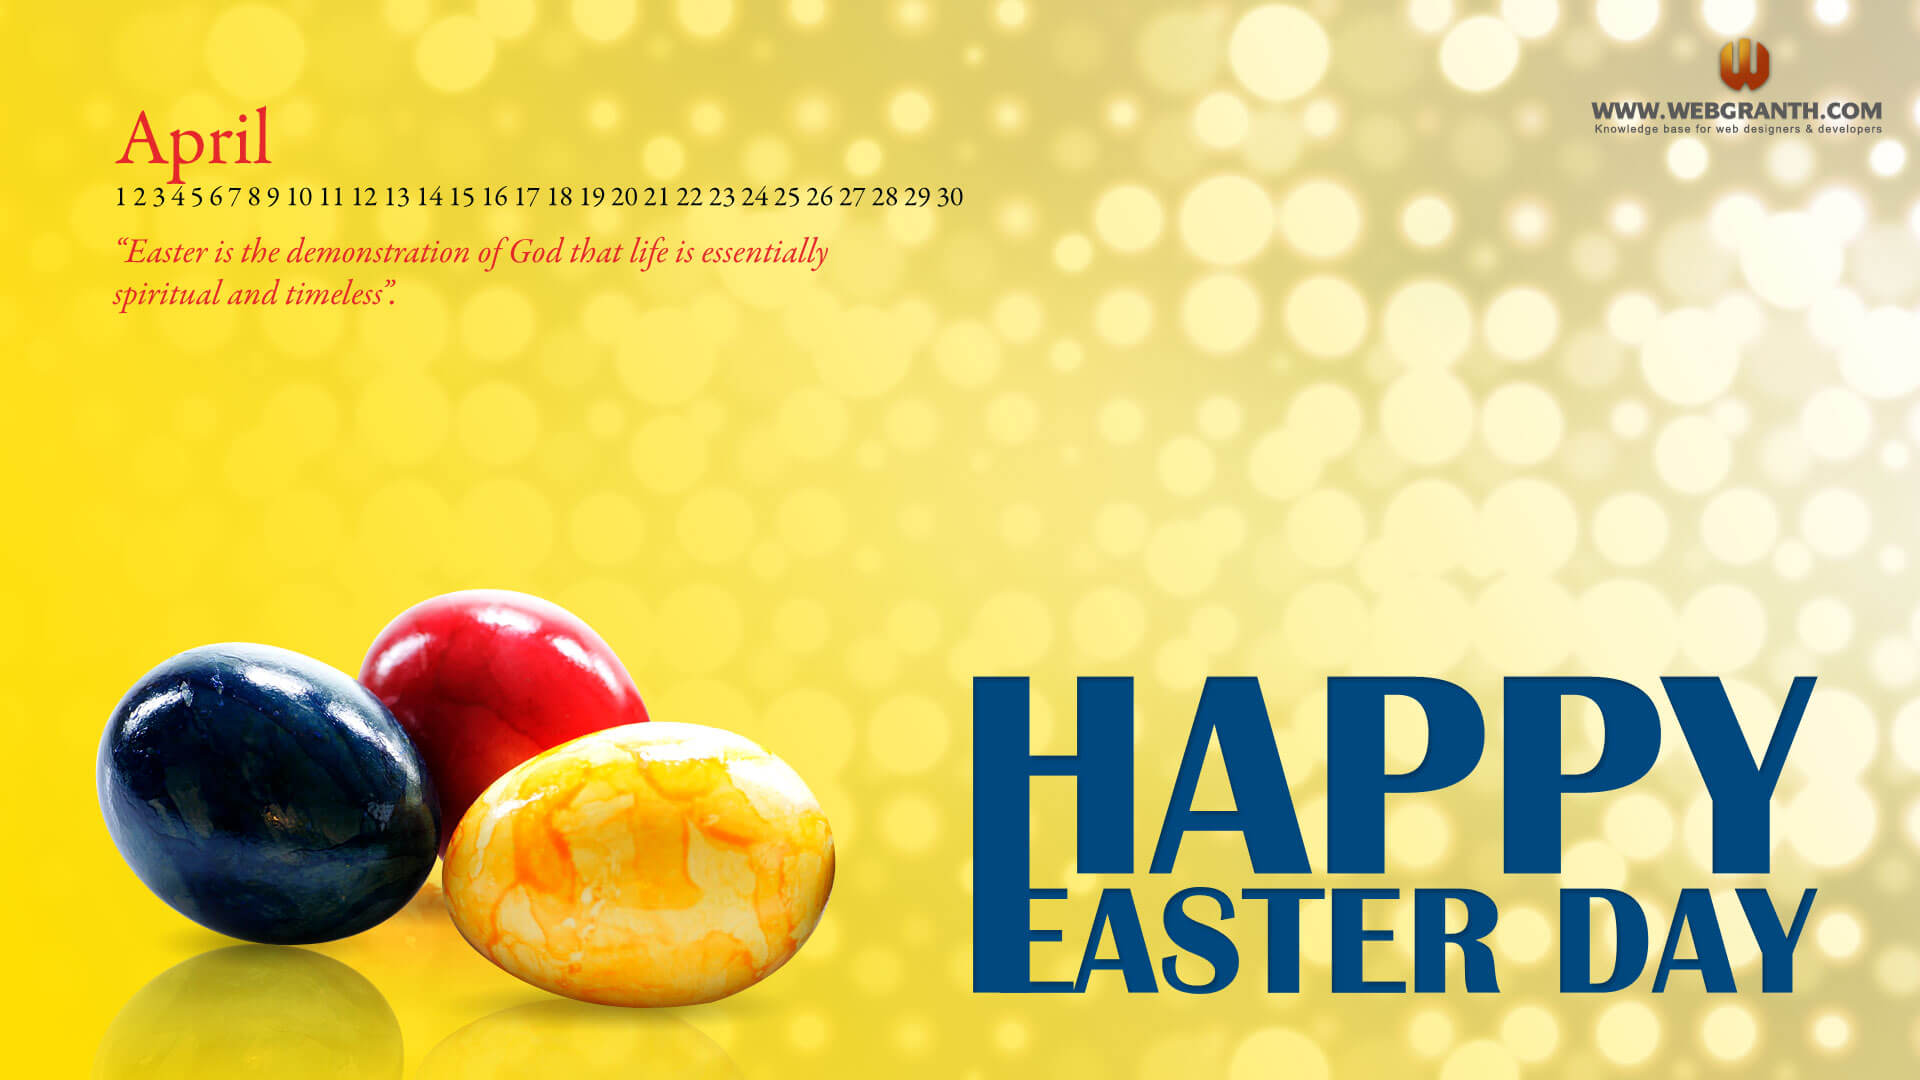 happy-easter-day-wishes-wallpaper